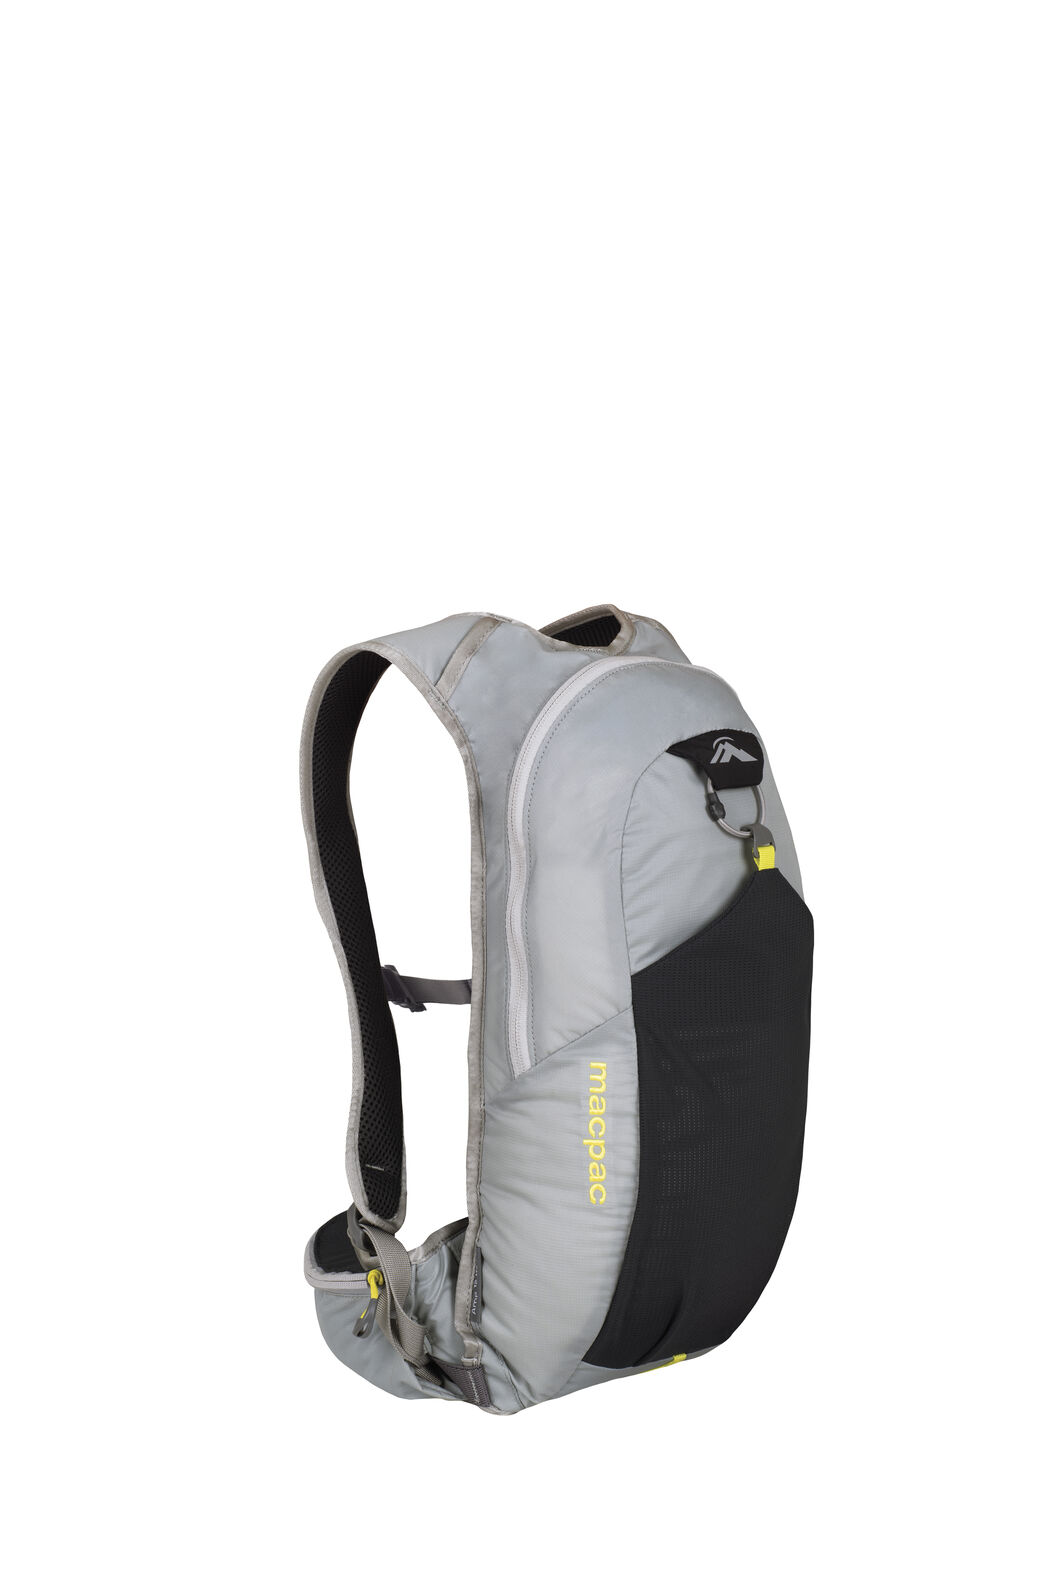 Macpac Amp 12 Hour 1.1 7L Running Pack, Highway, hi-res